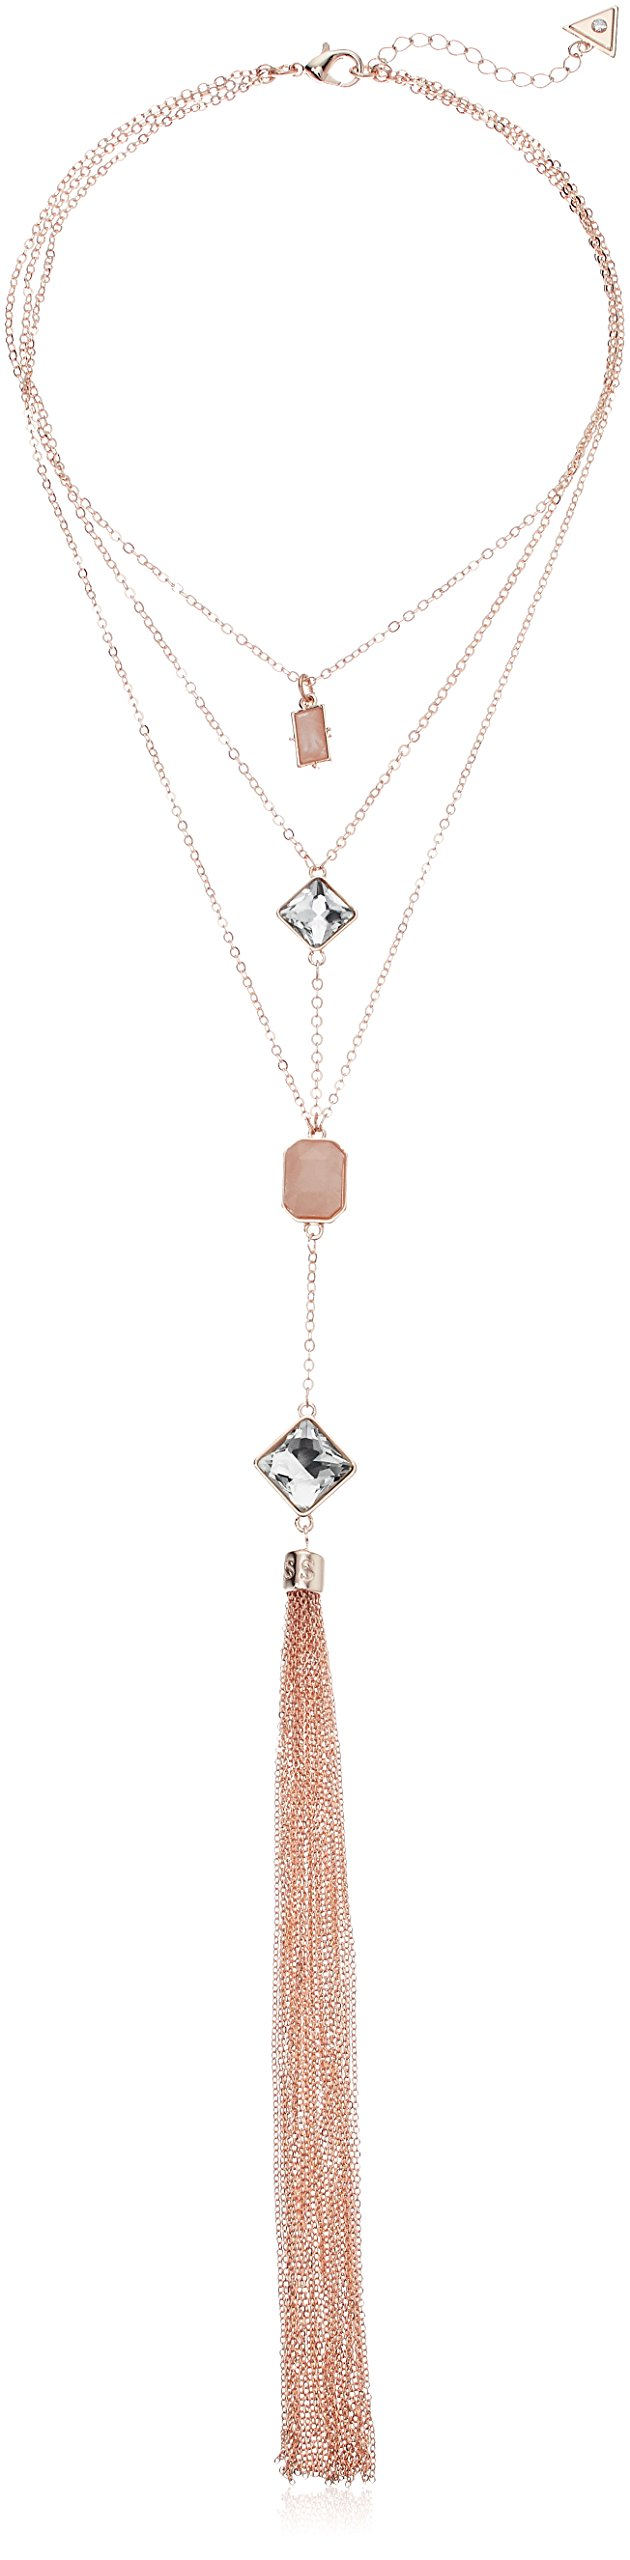 GUESS Love Struck Women's Layer Y Shaped Necklace W Stones, Rose Gold, One Size